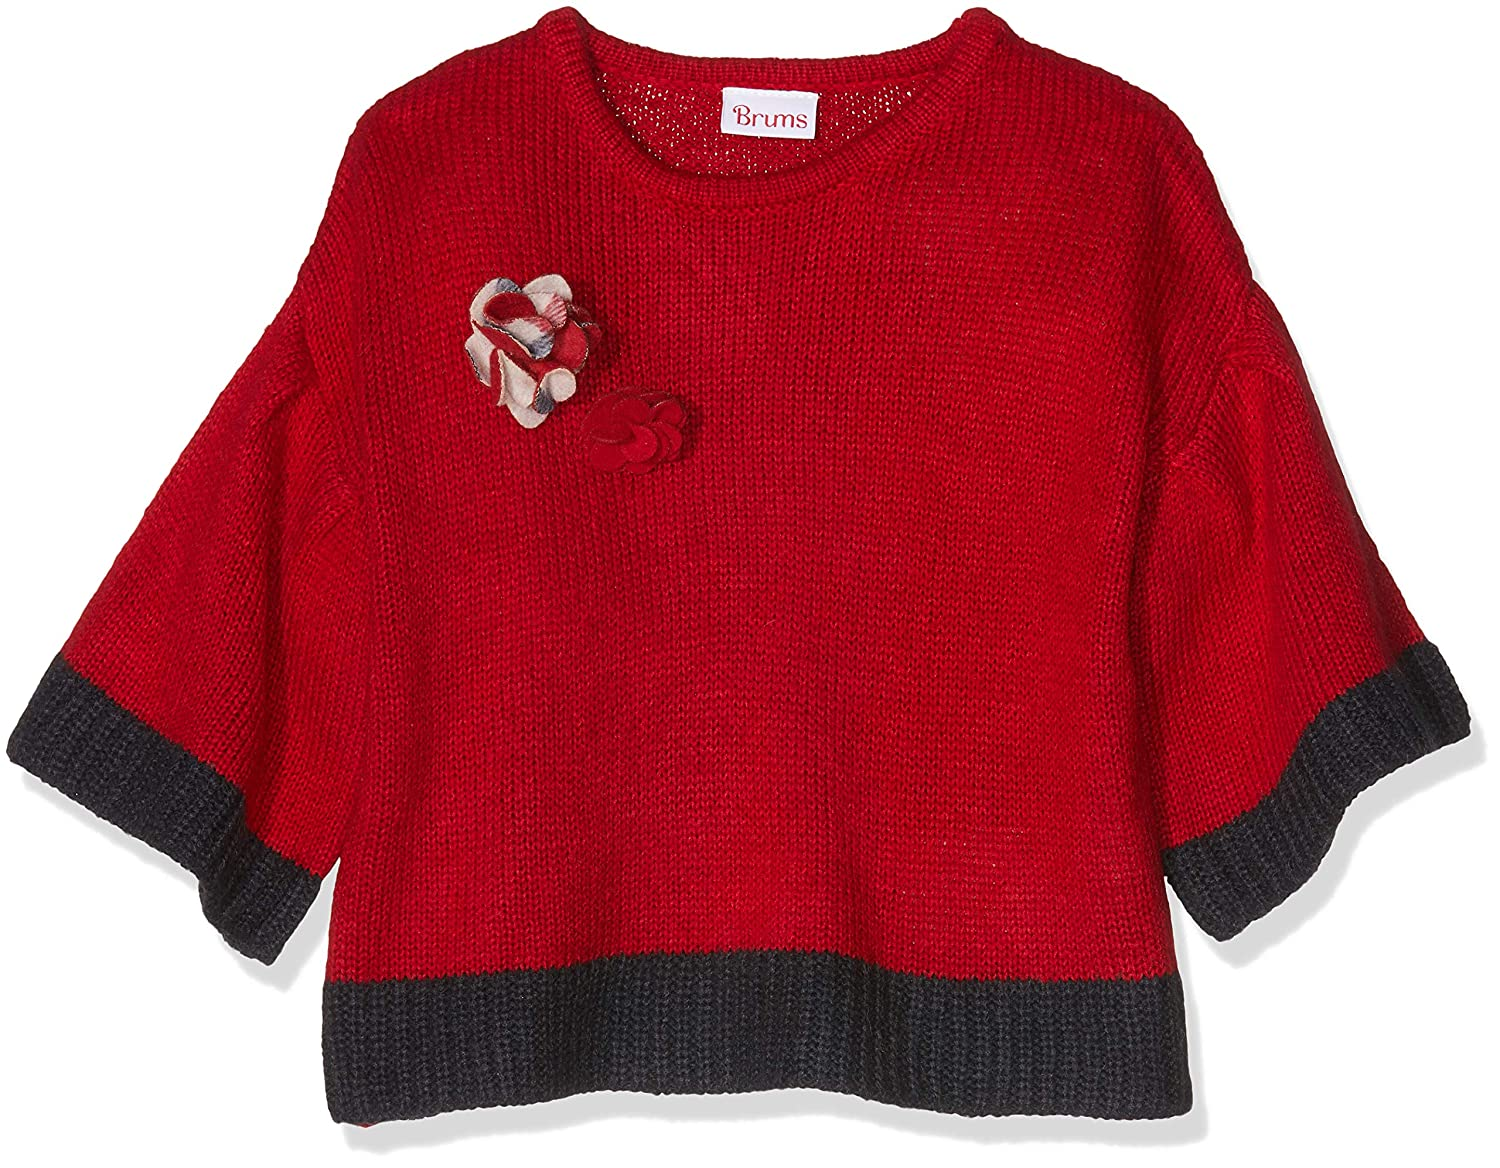 Brums Maglione Bambina